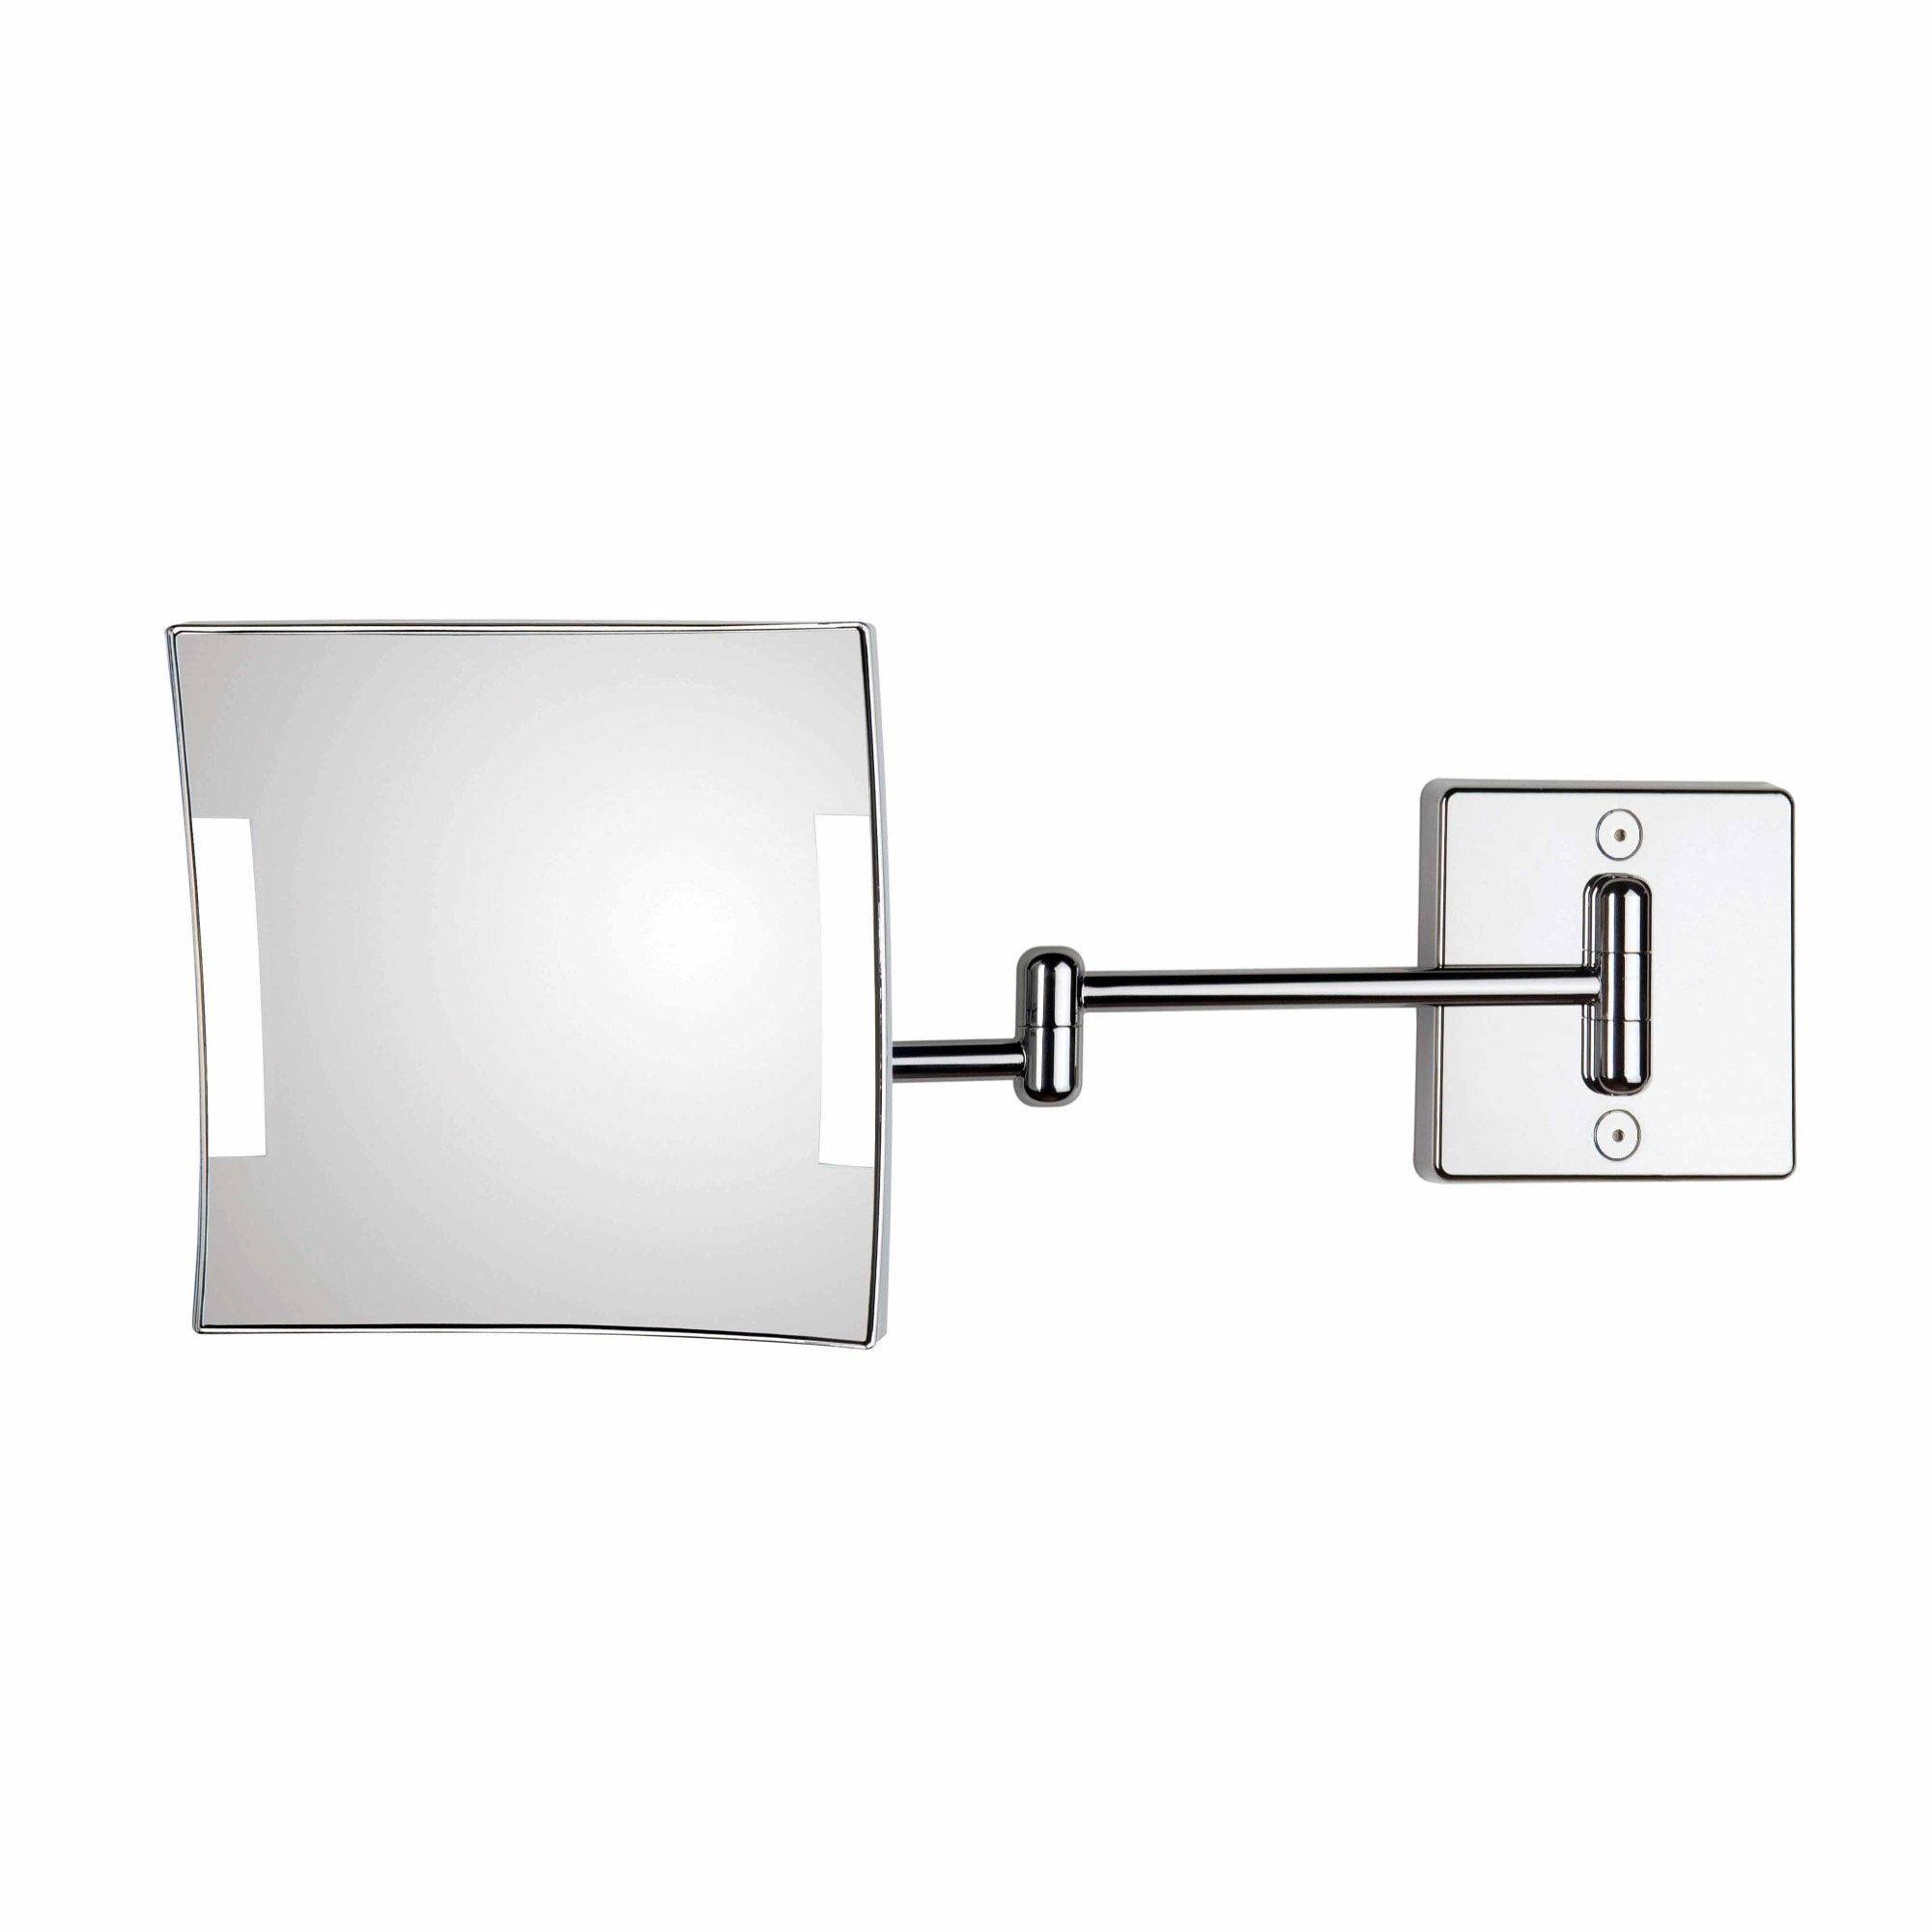 WS Bath Collections Quadrololed C60/2 KK3  Quadrolo 7-9/10W x 7-9/10H Wall Mounted Magnifying Mirror with LED Light